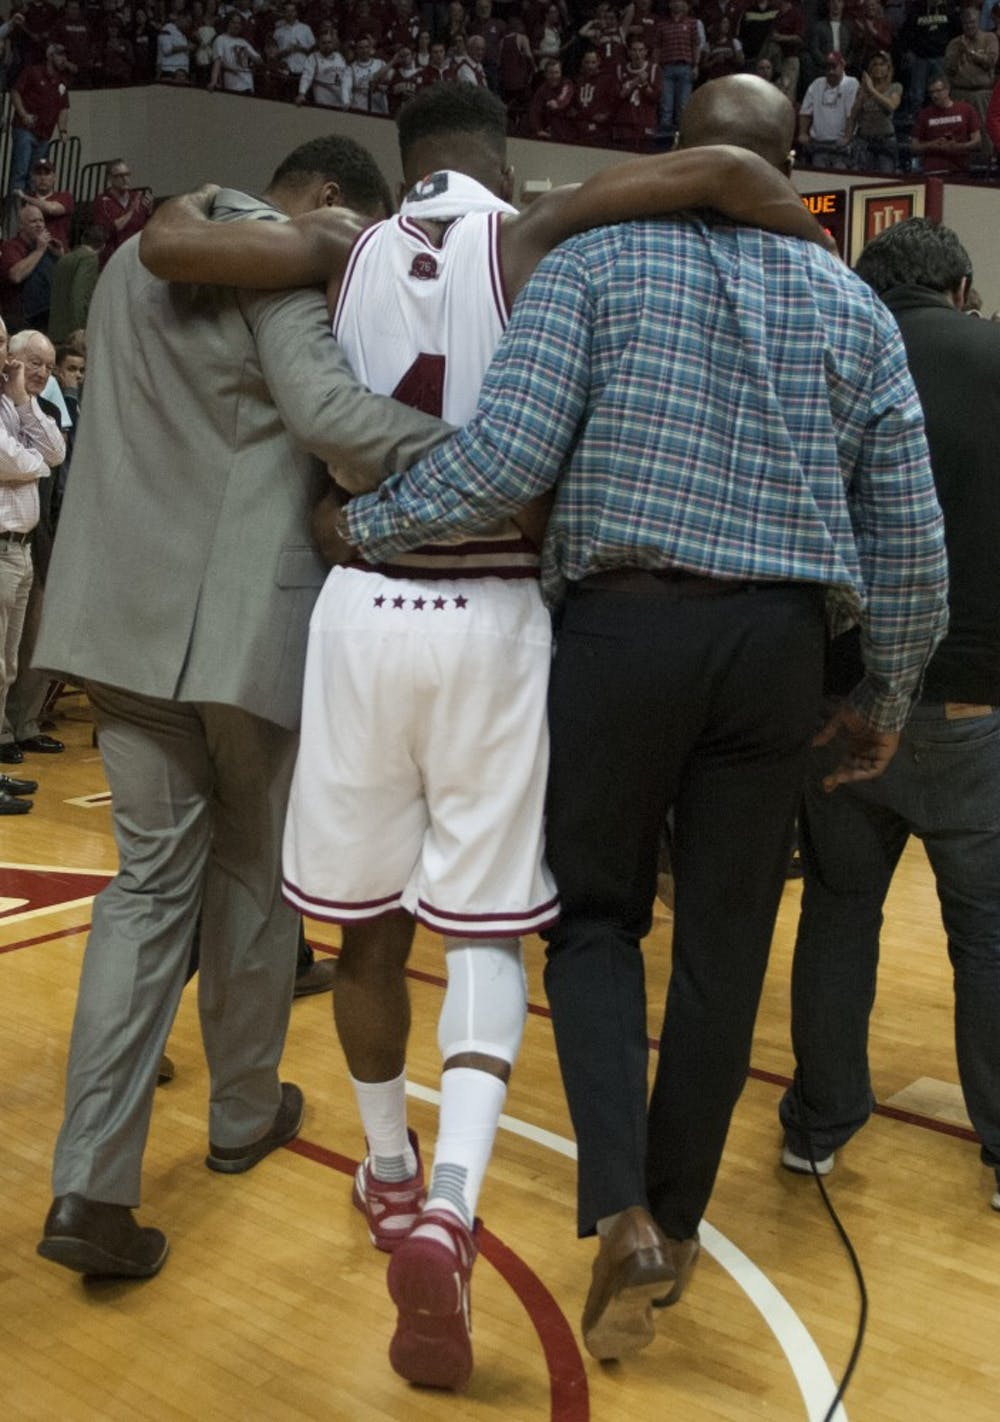 Sophomore guard Robert Johnson is helped off the court after the game against Purdue on Saturday at Assembly Hall. The Hoosiers won 77-73.